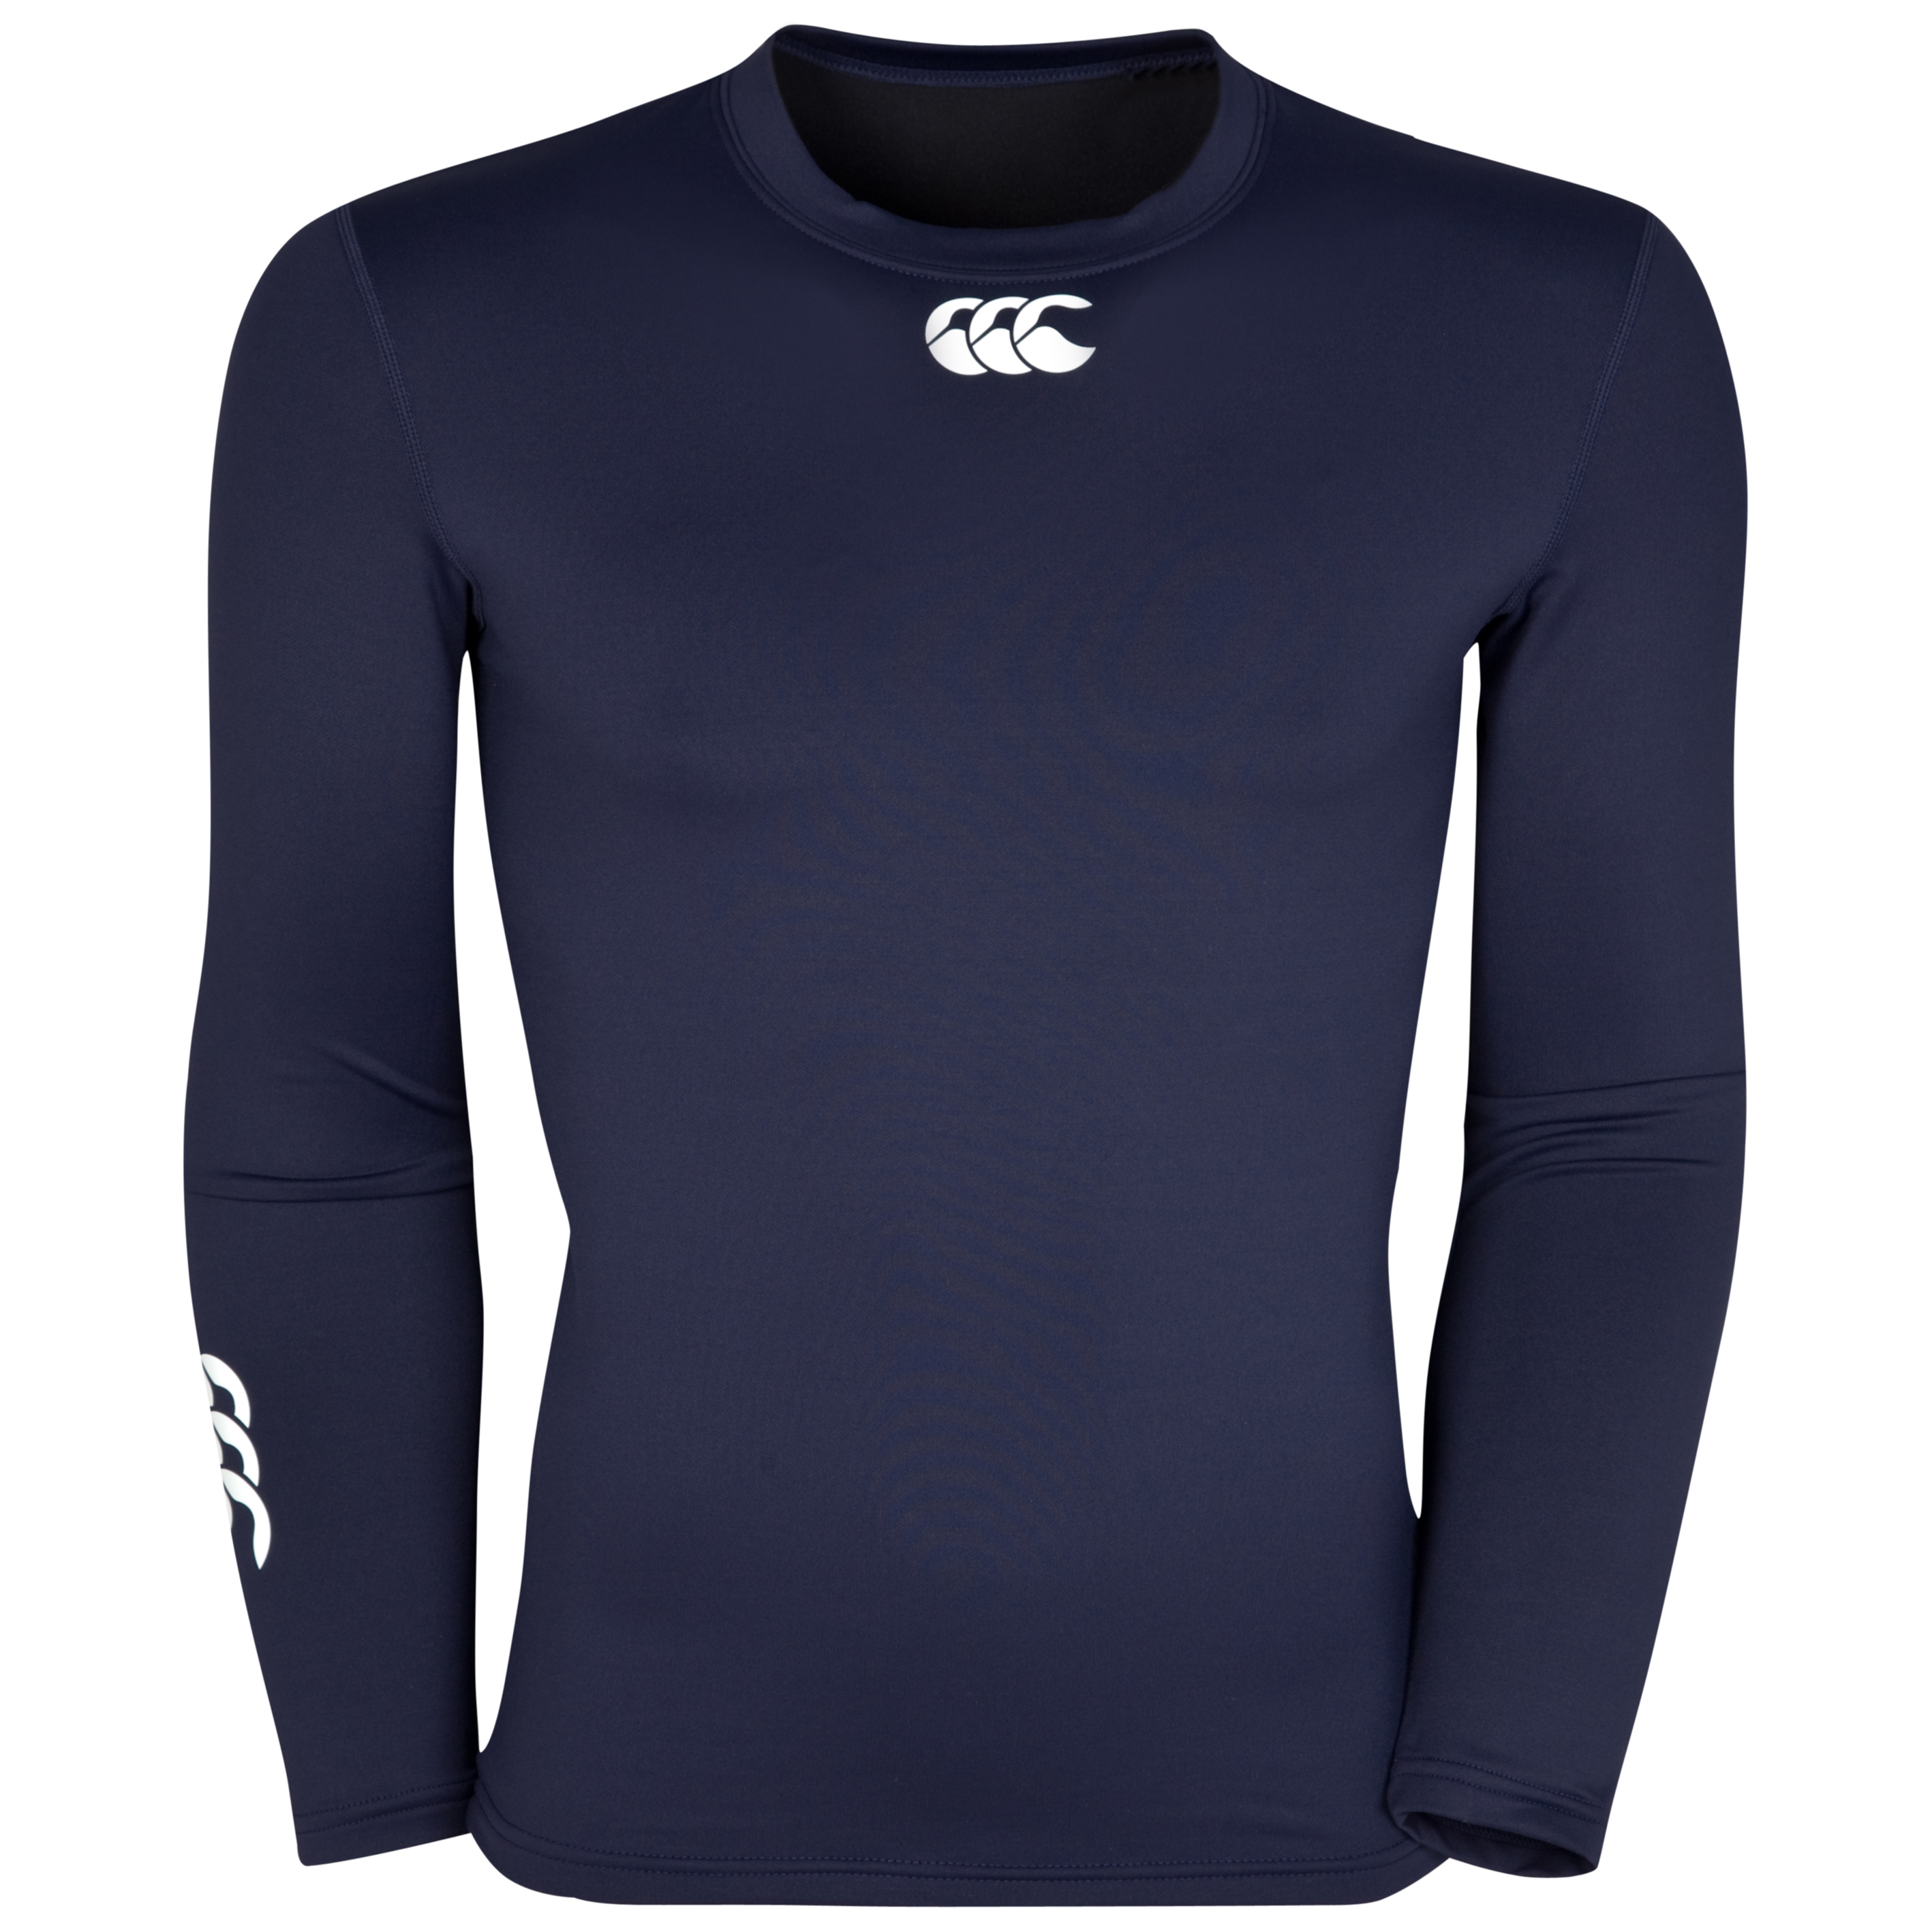 Canterbury Cold Long Sleeve Baselayer Top - Kids - Navy